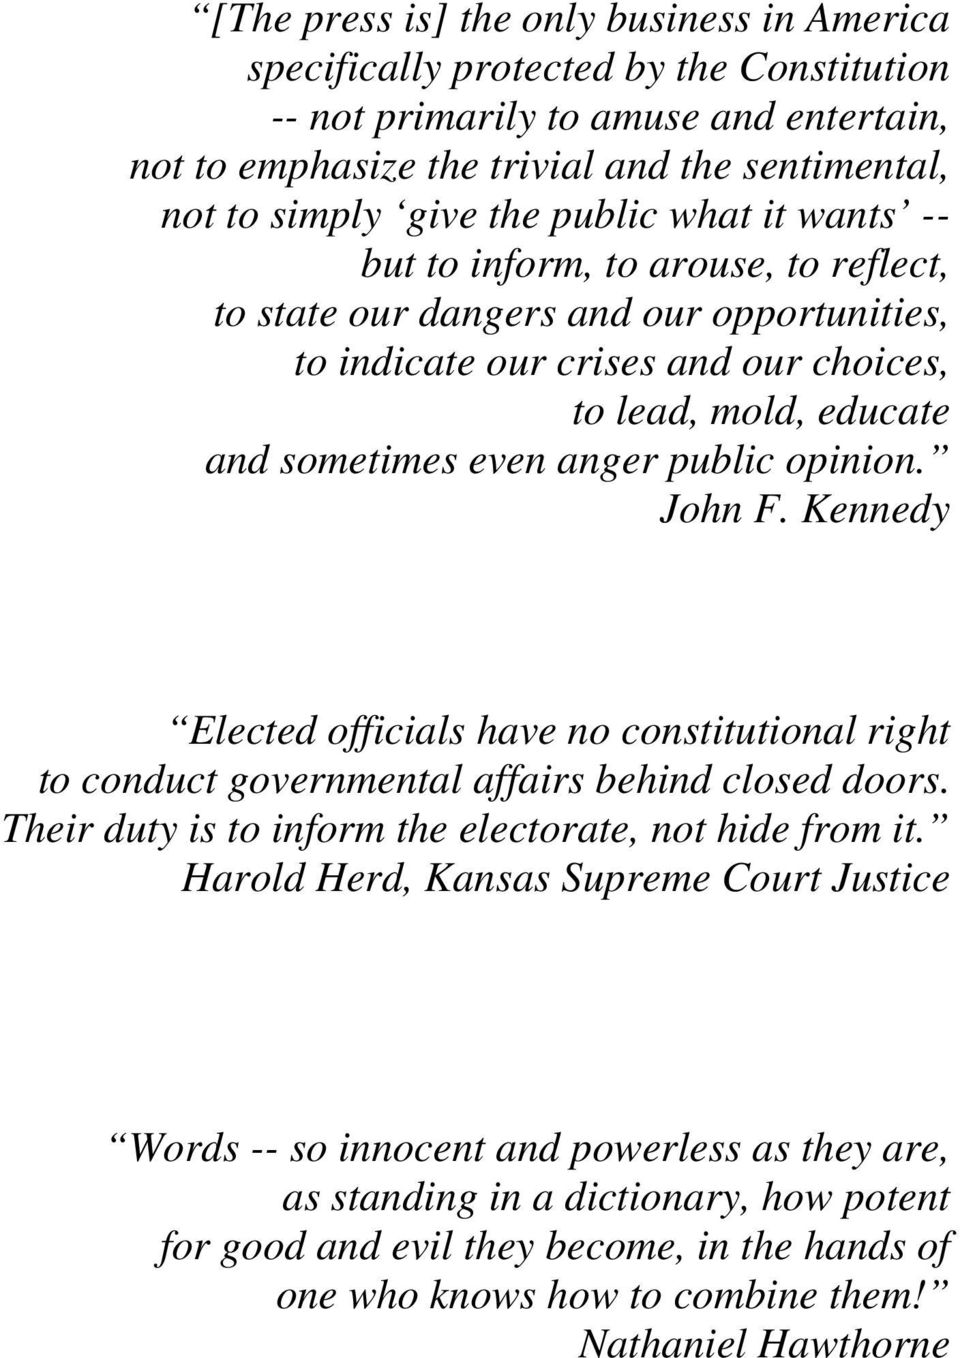 public opinion. John F. Kennedy Elected officials have no constitutional right to conduct governmental affairs behind closed doors. Their duty is to inform the electorate, not hide from it.